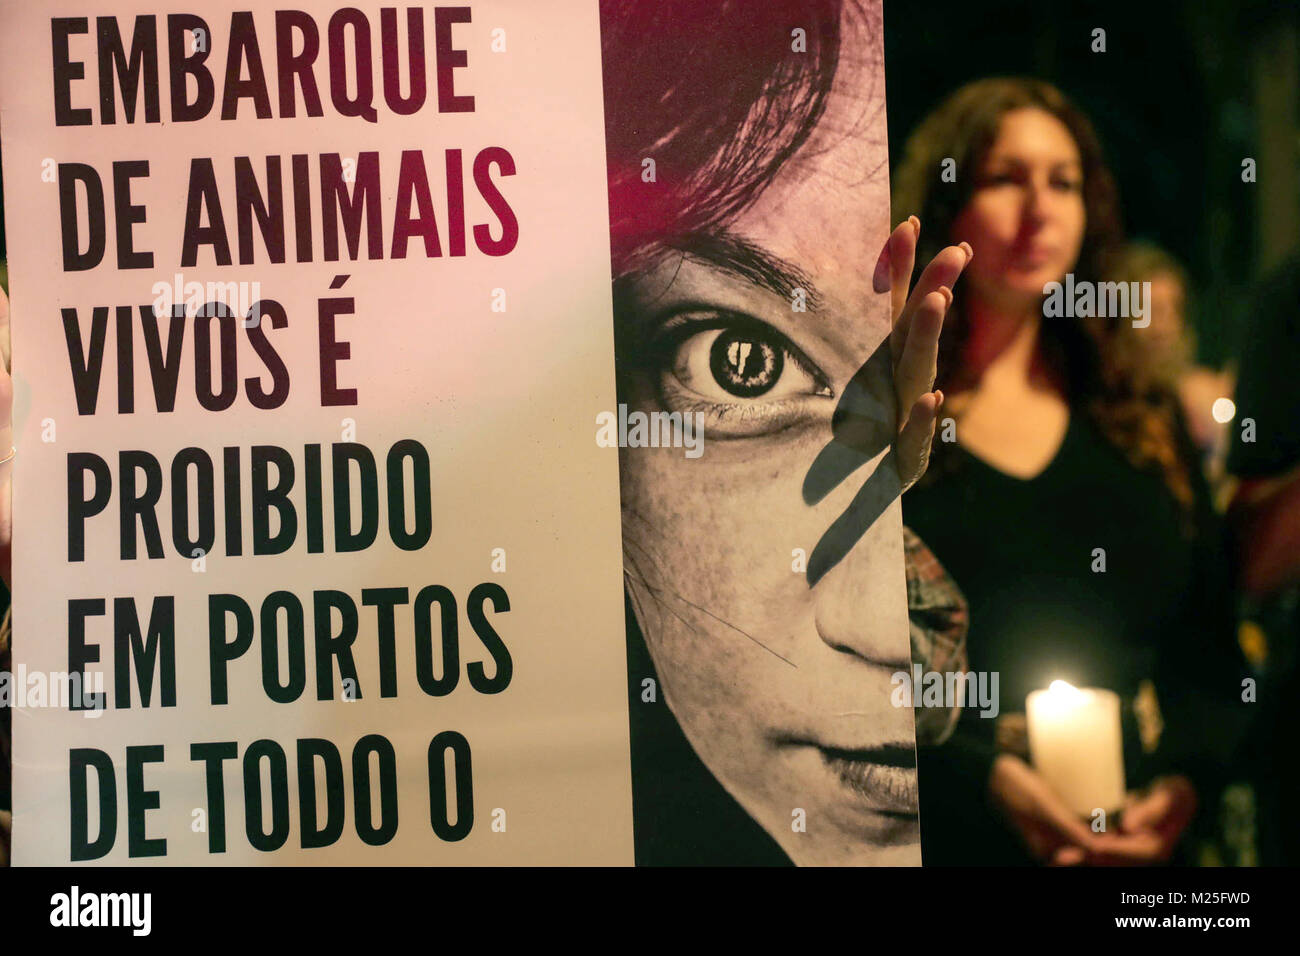 Sao Paulo, Brazil. 05th Feb, 2018. Activists against animal explotation protest in front of the Turkish Embassy - Stock Image